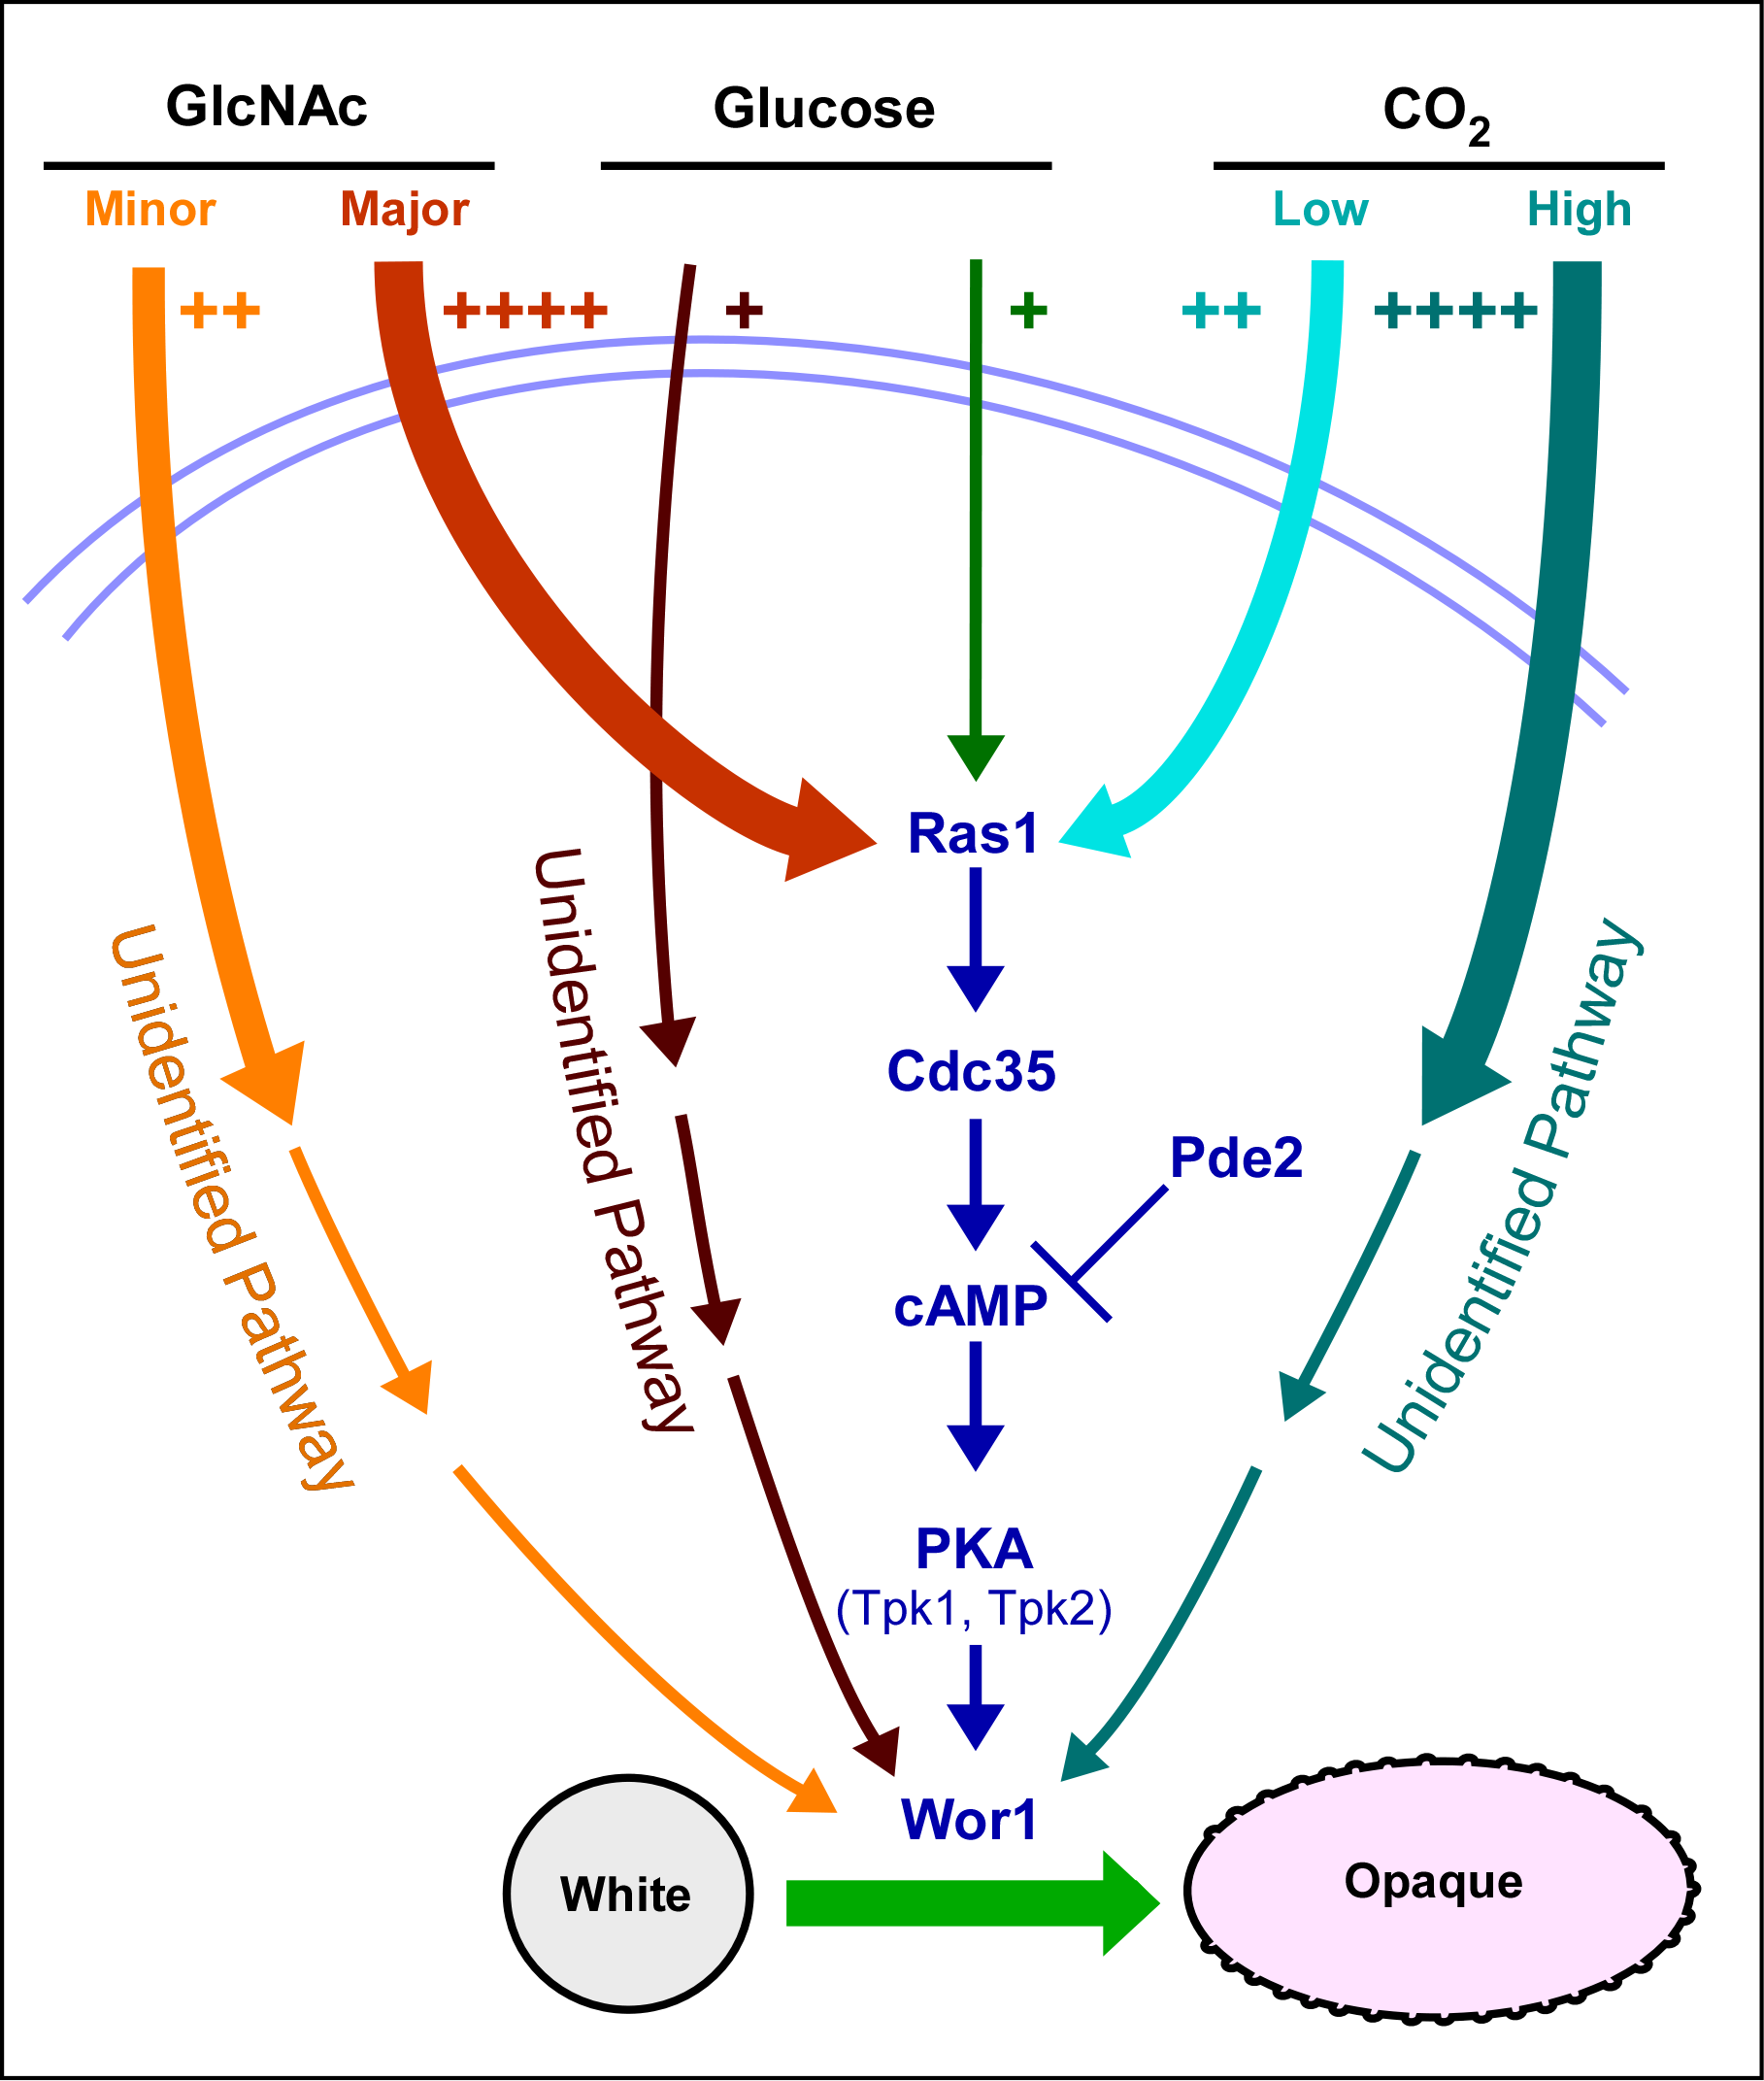 A model of the regulatory circuitry involved in the induction of the white to opaque switch.